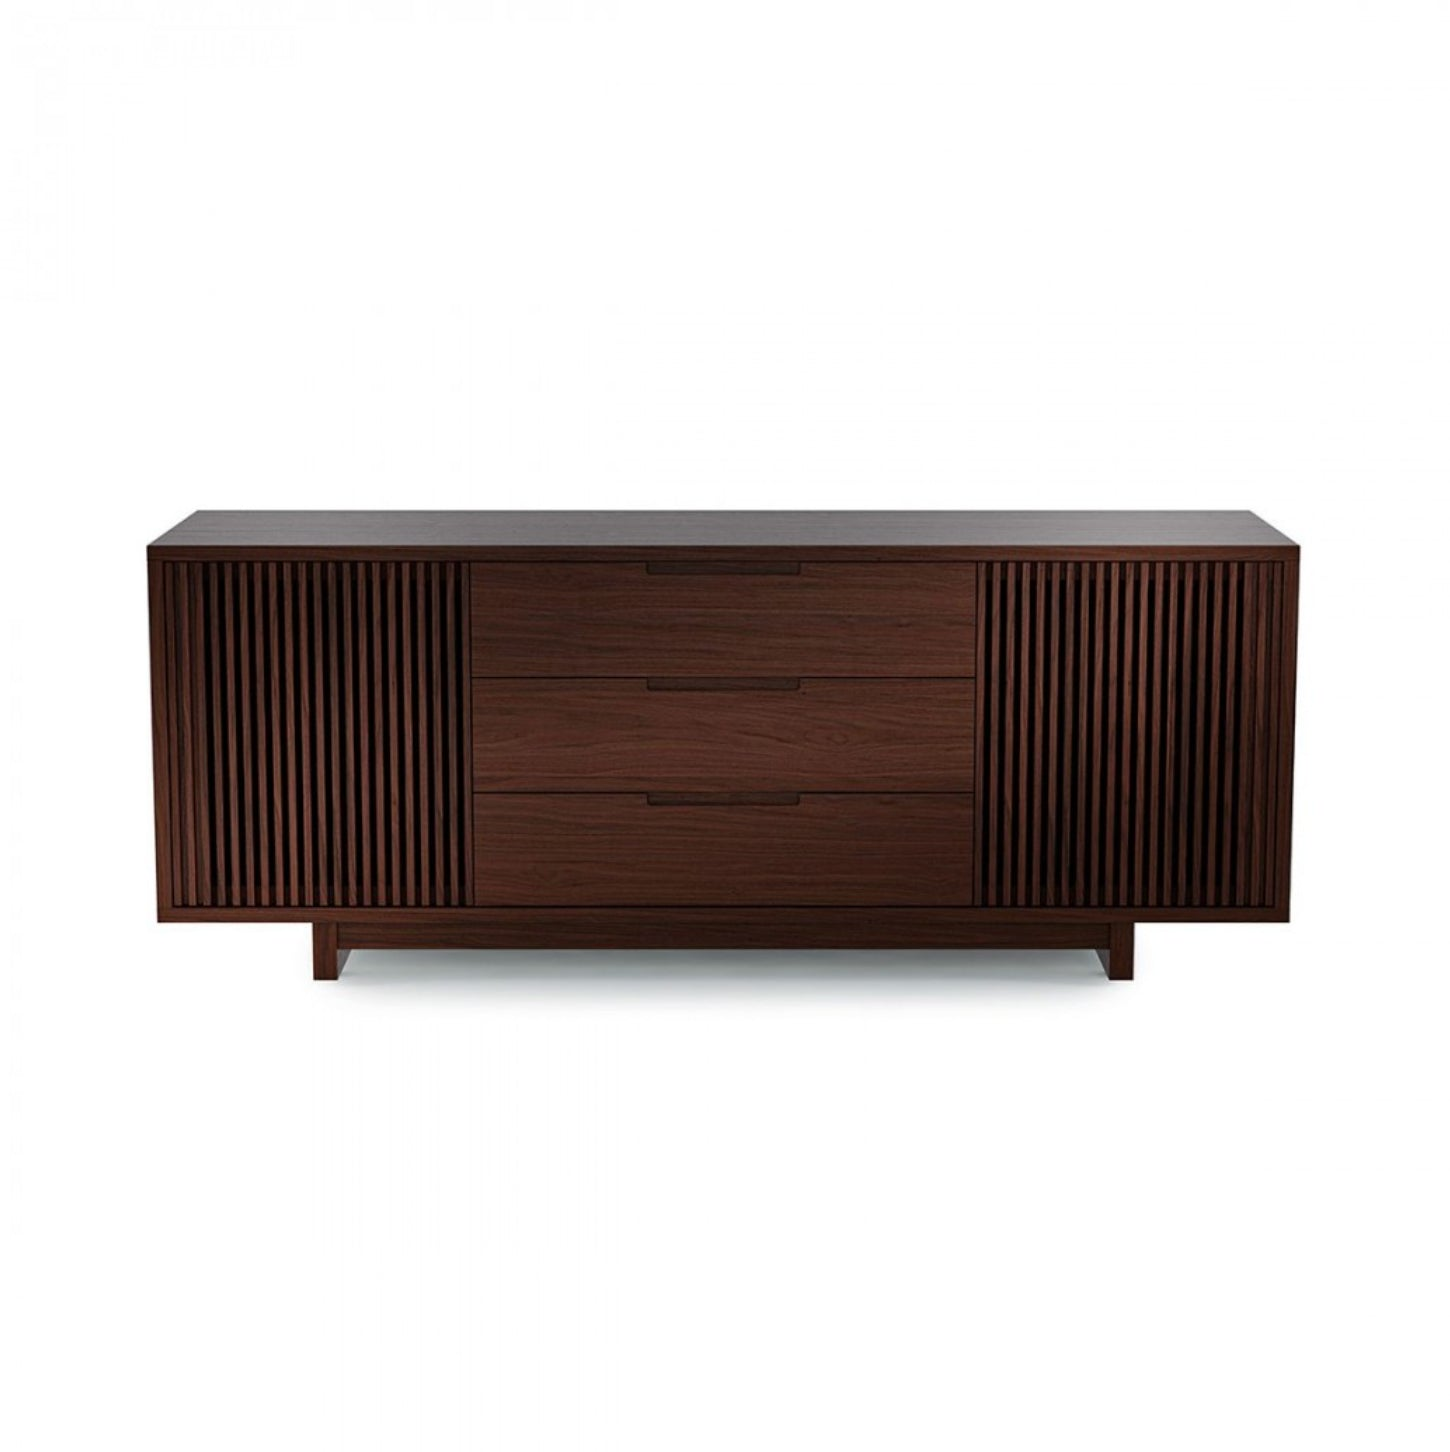 Vertica 8558 Tall Entertainment Cabinet | Chocolate Stained Walnut